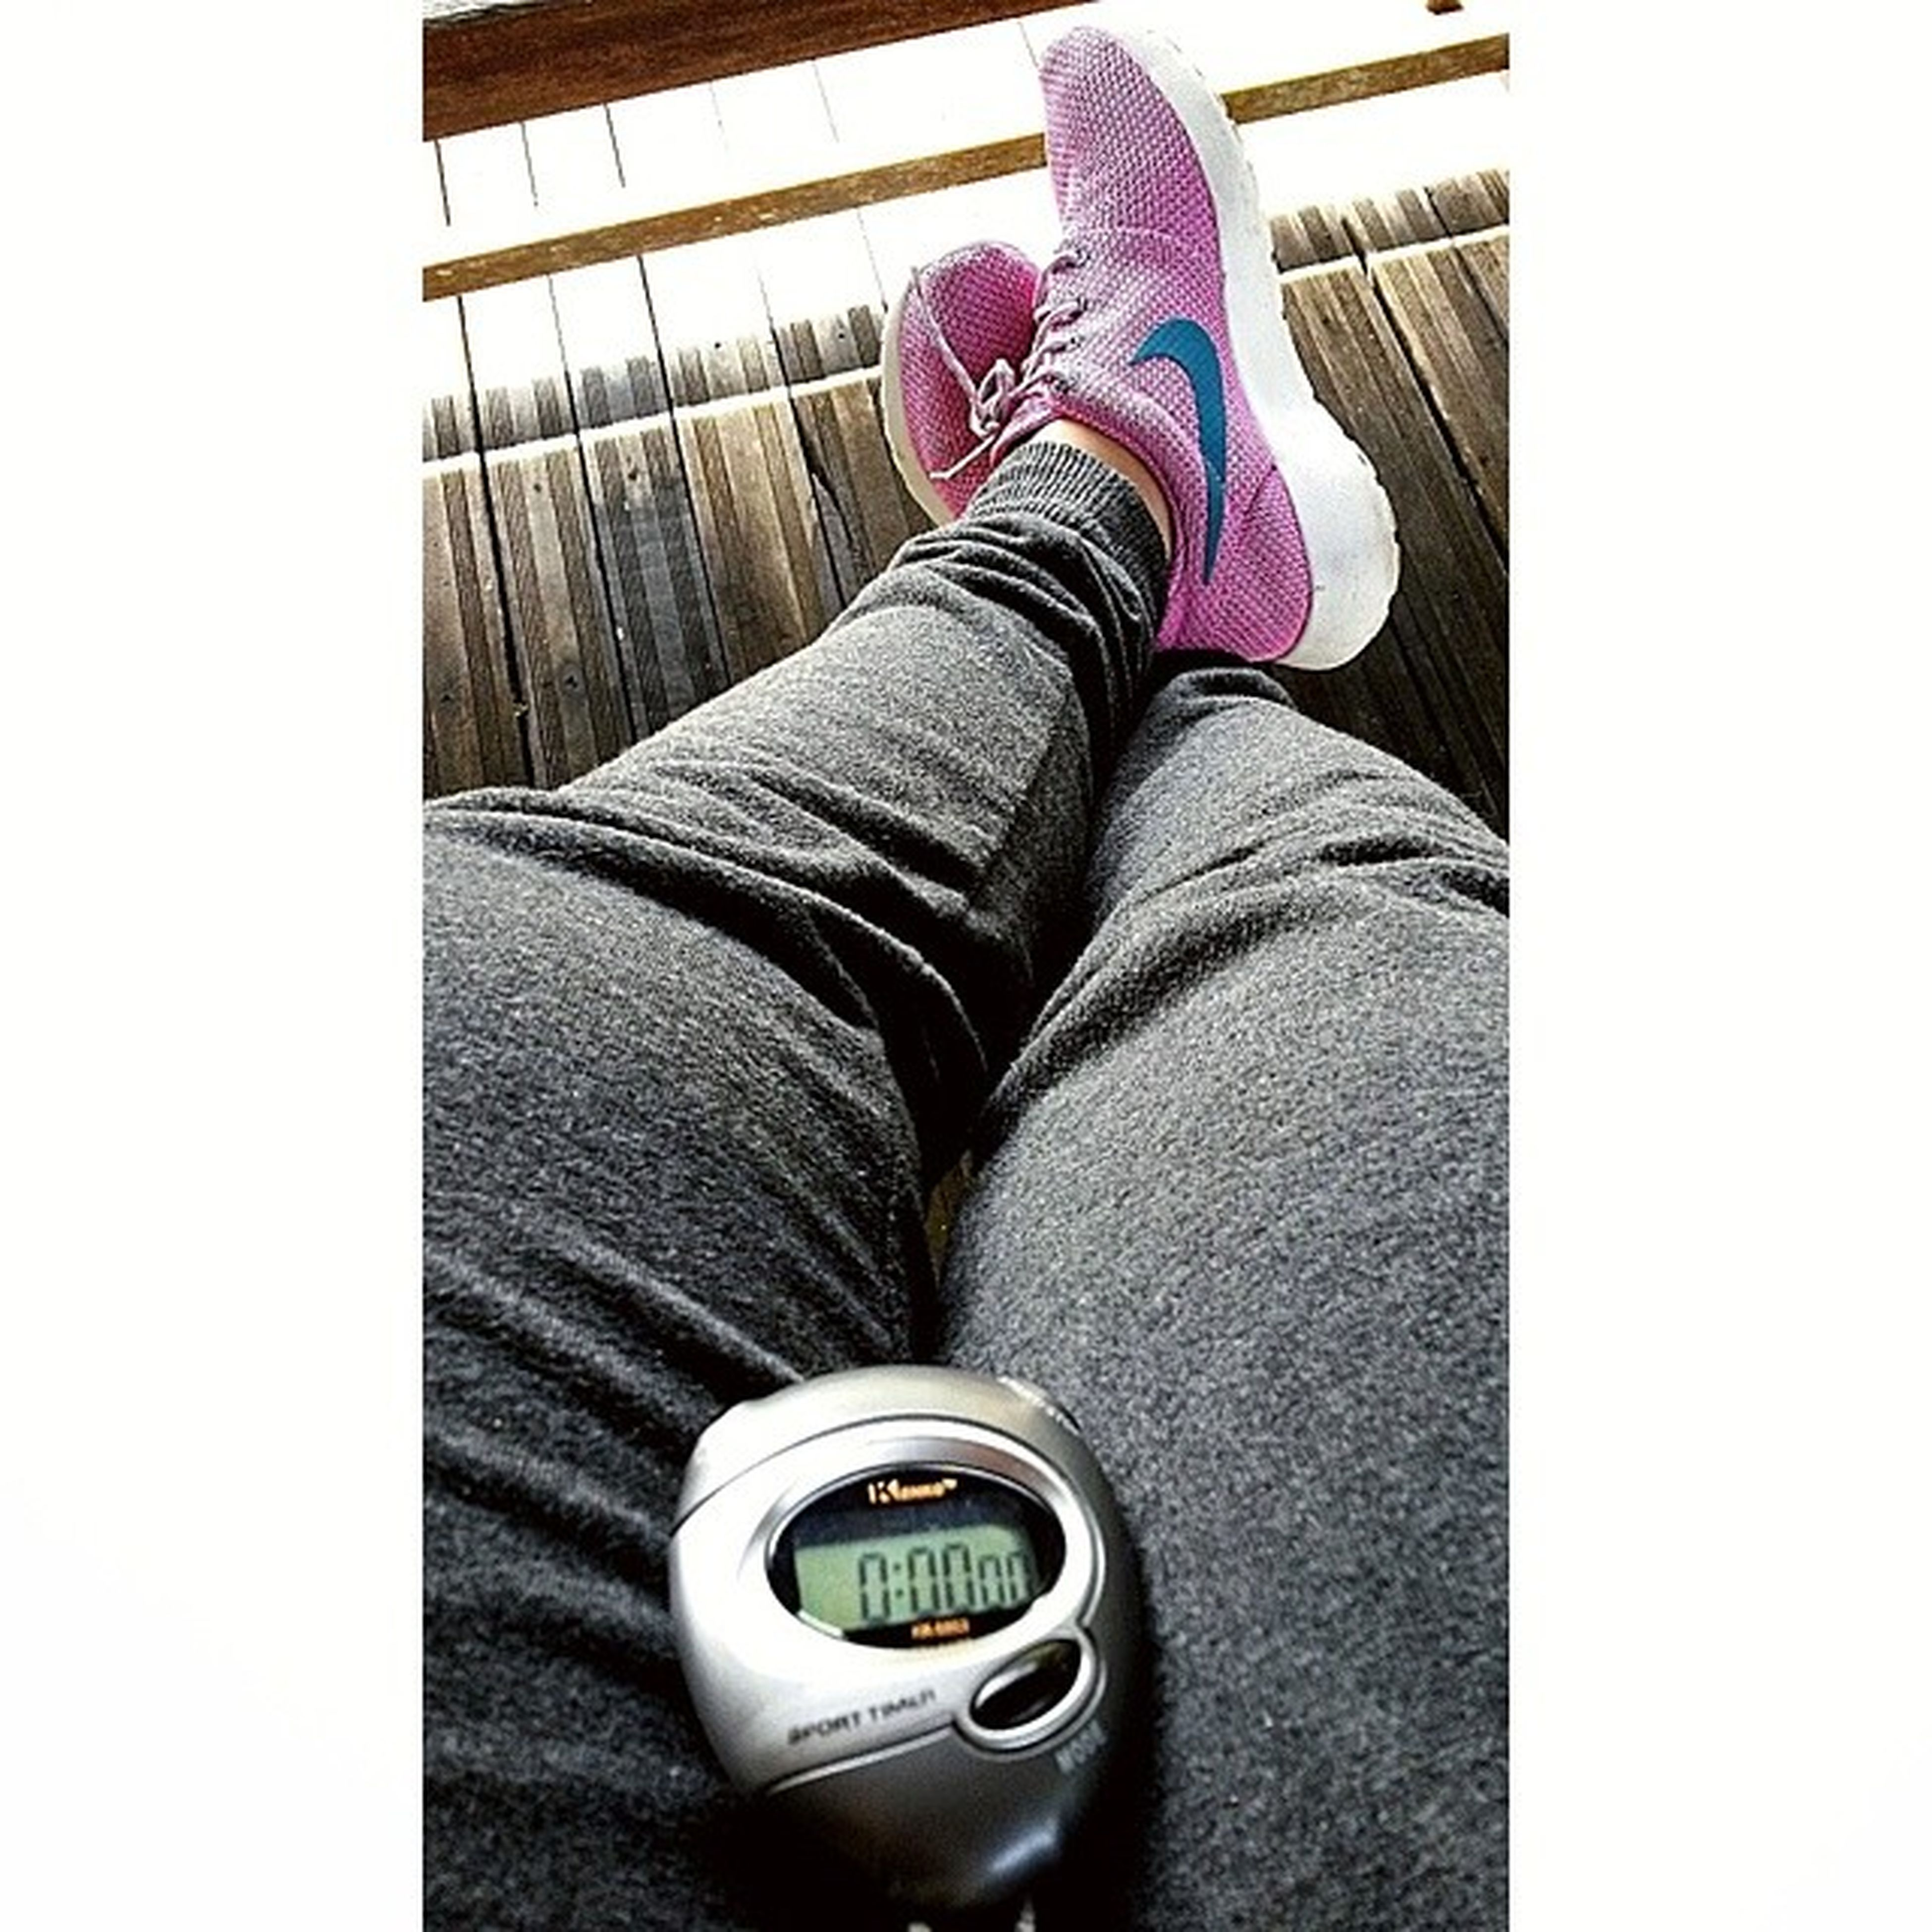 low section, person, shoe, jeans, lifestyles, footwear, personal perspective, human foot, indoors, casual clothing, legs crossed at ankle, sitting, men, high angle view, standing, relaxation, leisure activity